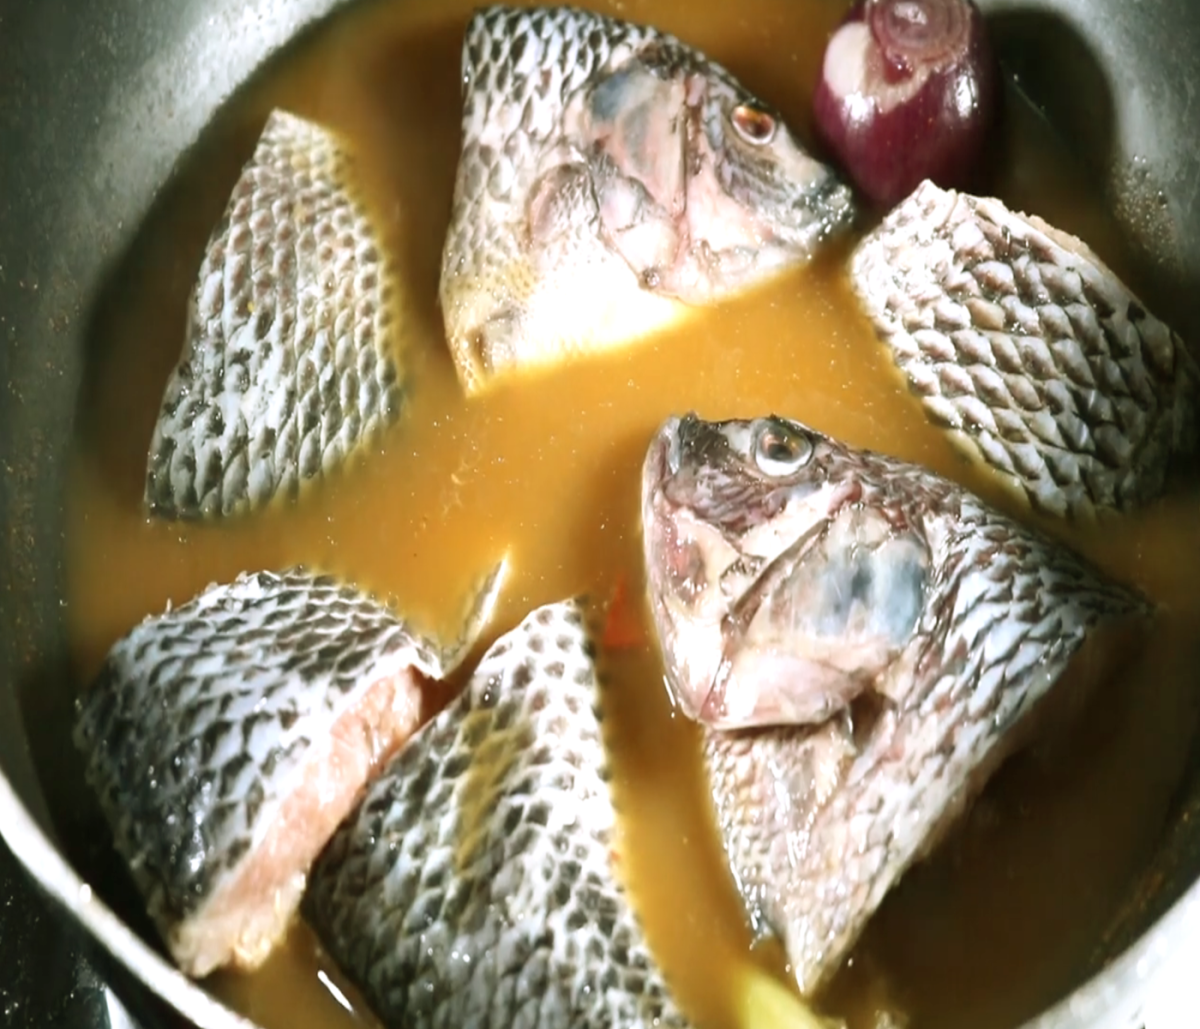 Add in the fish into the pot to cook with the boiled seasonings and spices